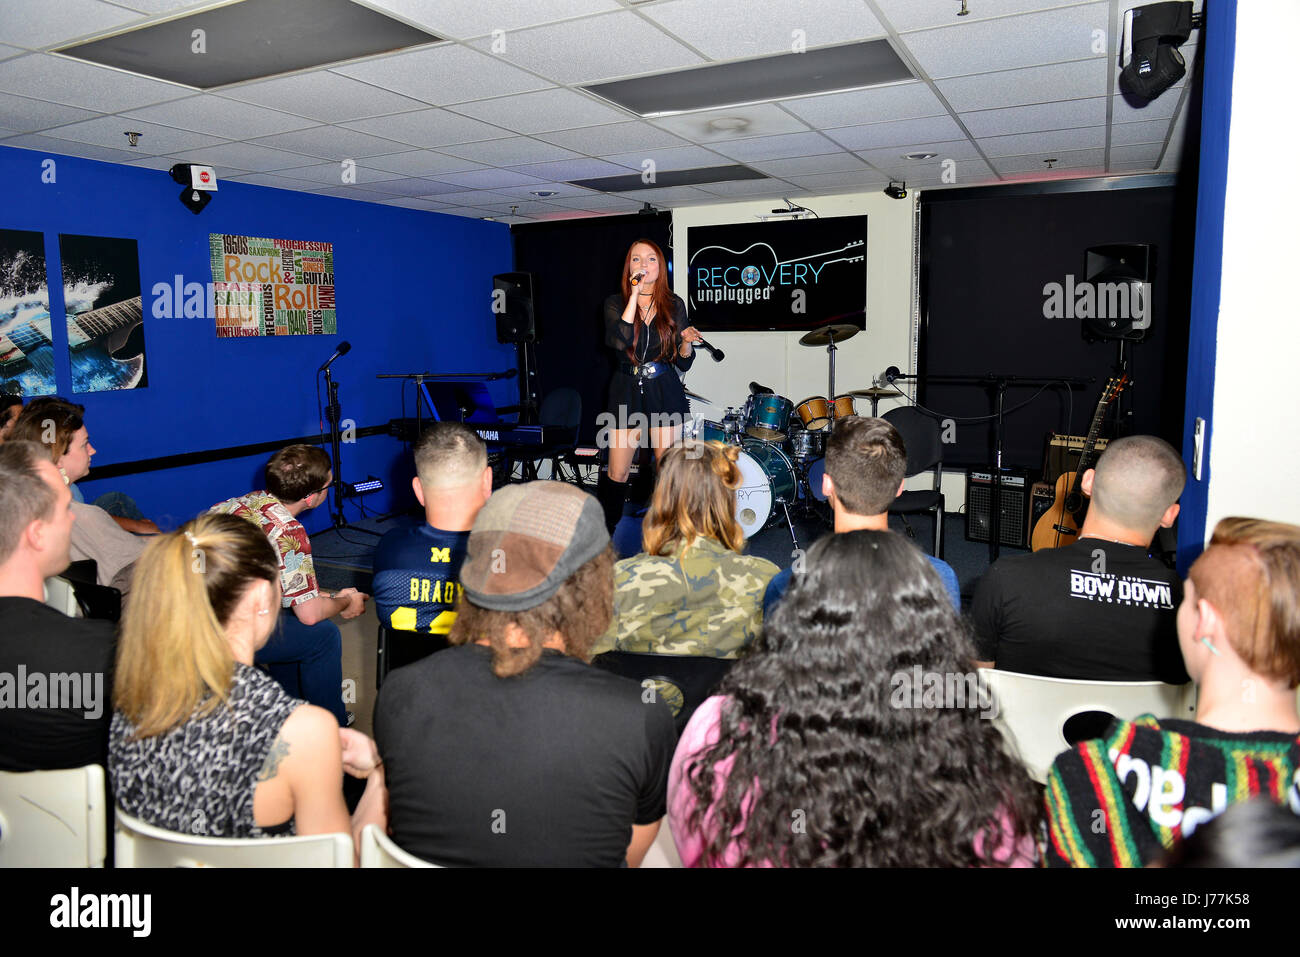 Fort. Lauderdale, FL, USA. 23rd May, 2017. Singer Kendra Erika performs at Recovery Unplugged Treatment Center on May 23, 2017 in Ft. Lauderdale, Florida. Credit: Mpi10/Media Punch/Alamy Live News Stock Photo